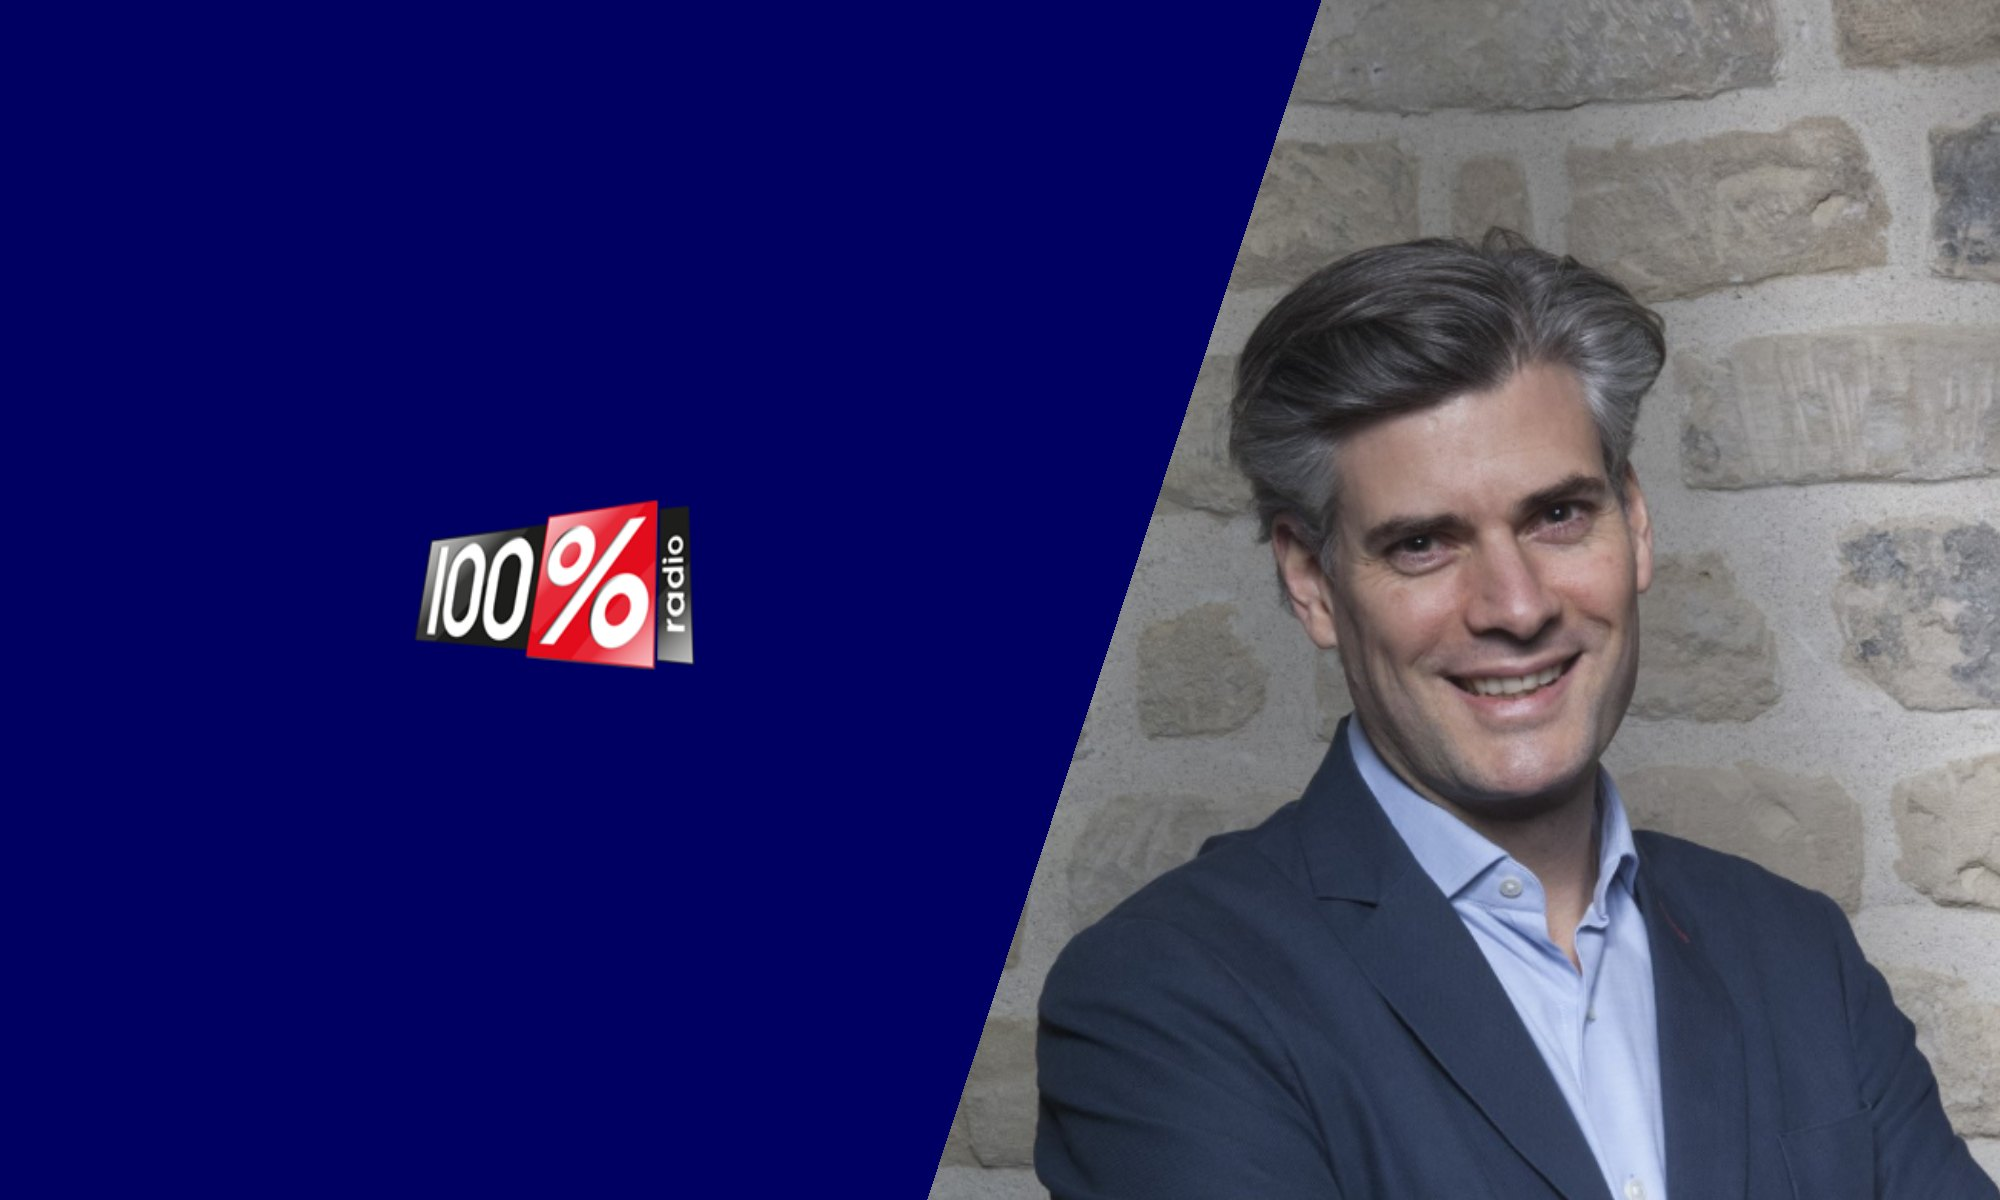 Florian Reinaud en interview sur 100% Radio